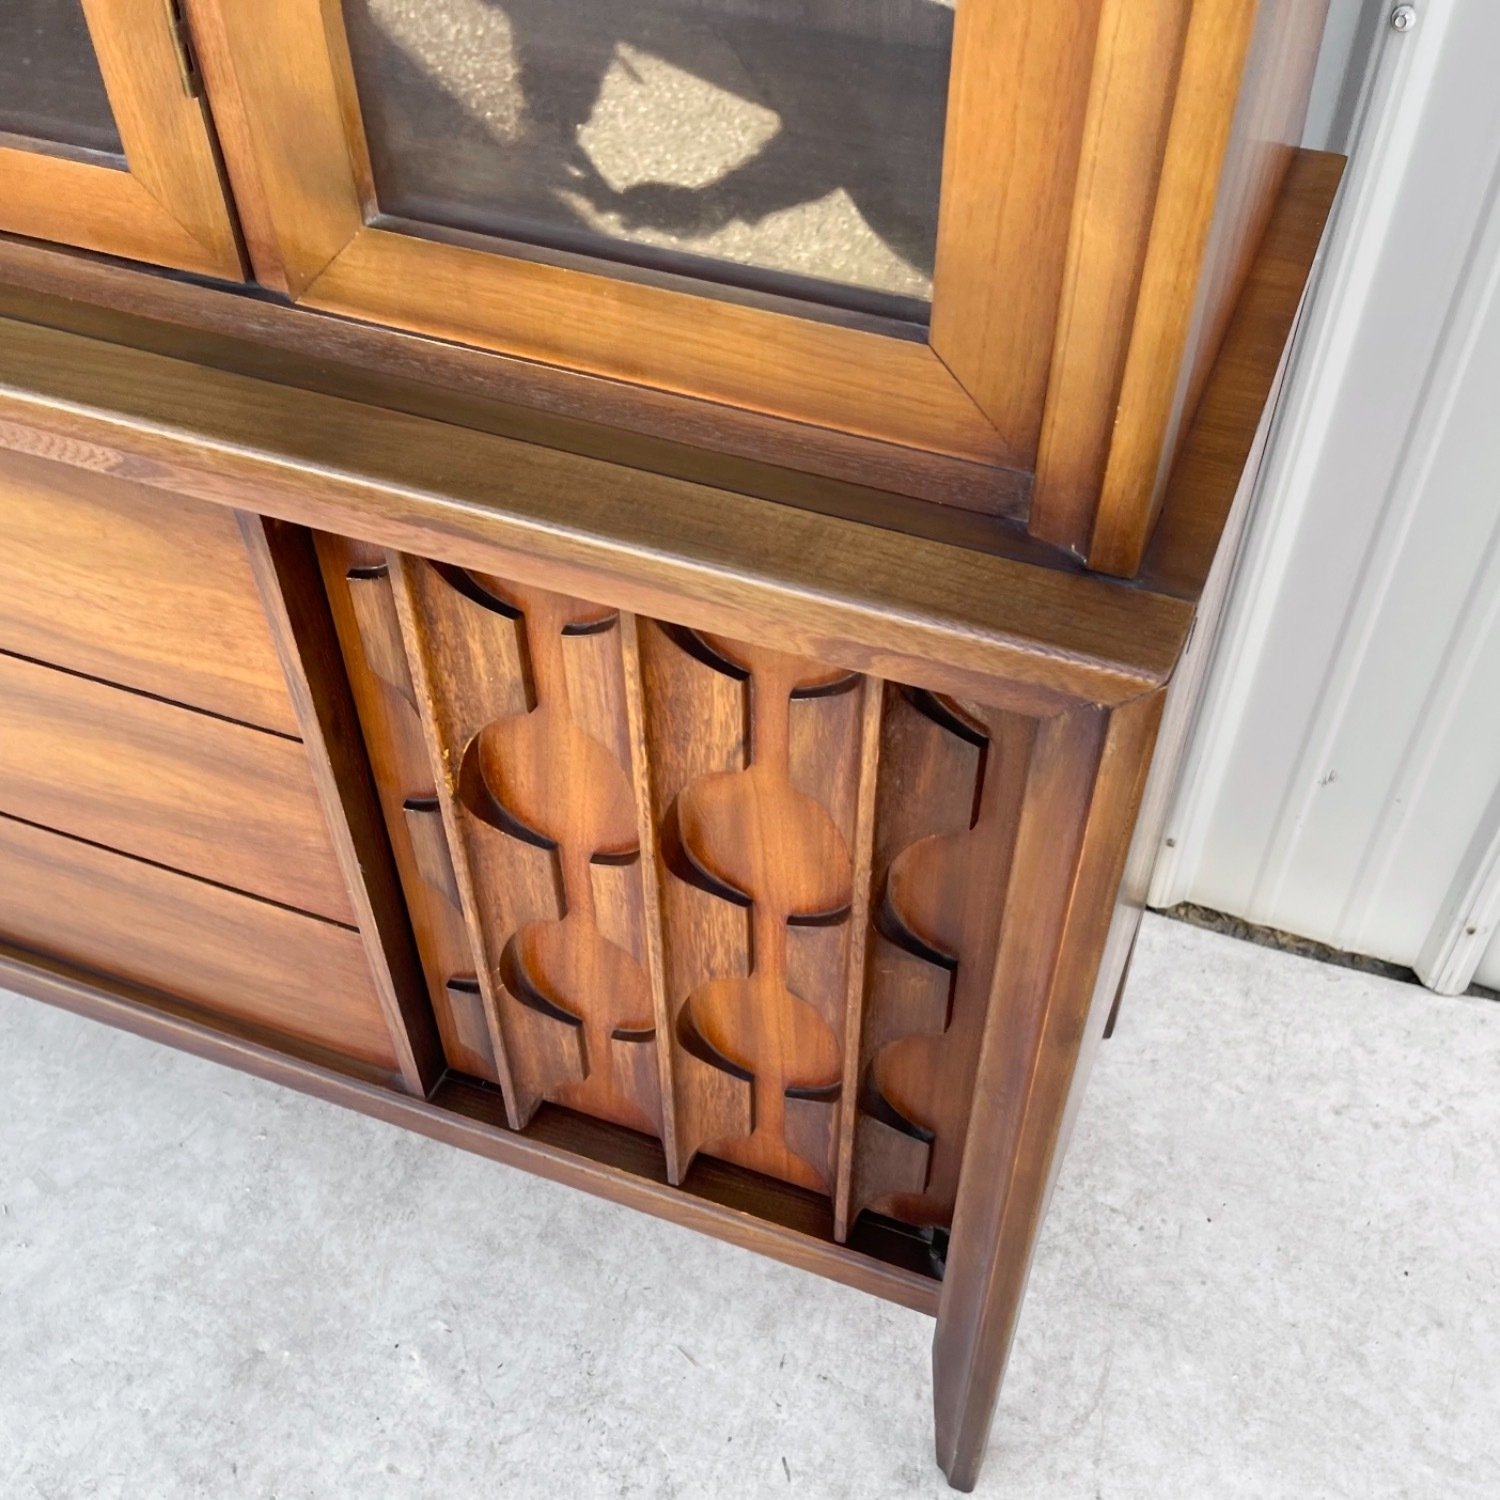 Mid-Century Modern Sideboard With Cabinet - image-15